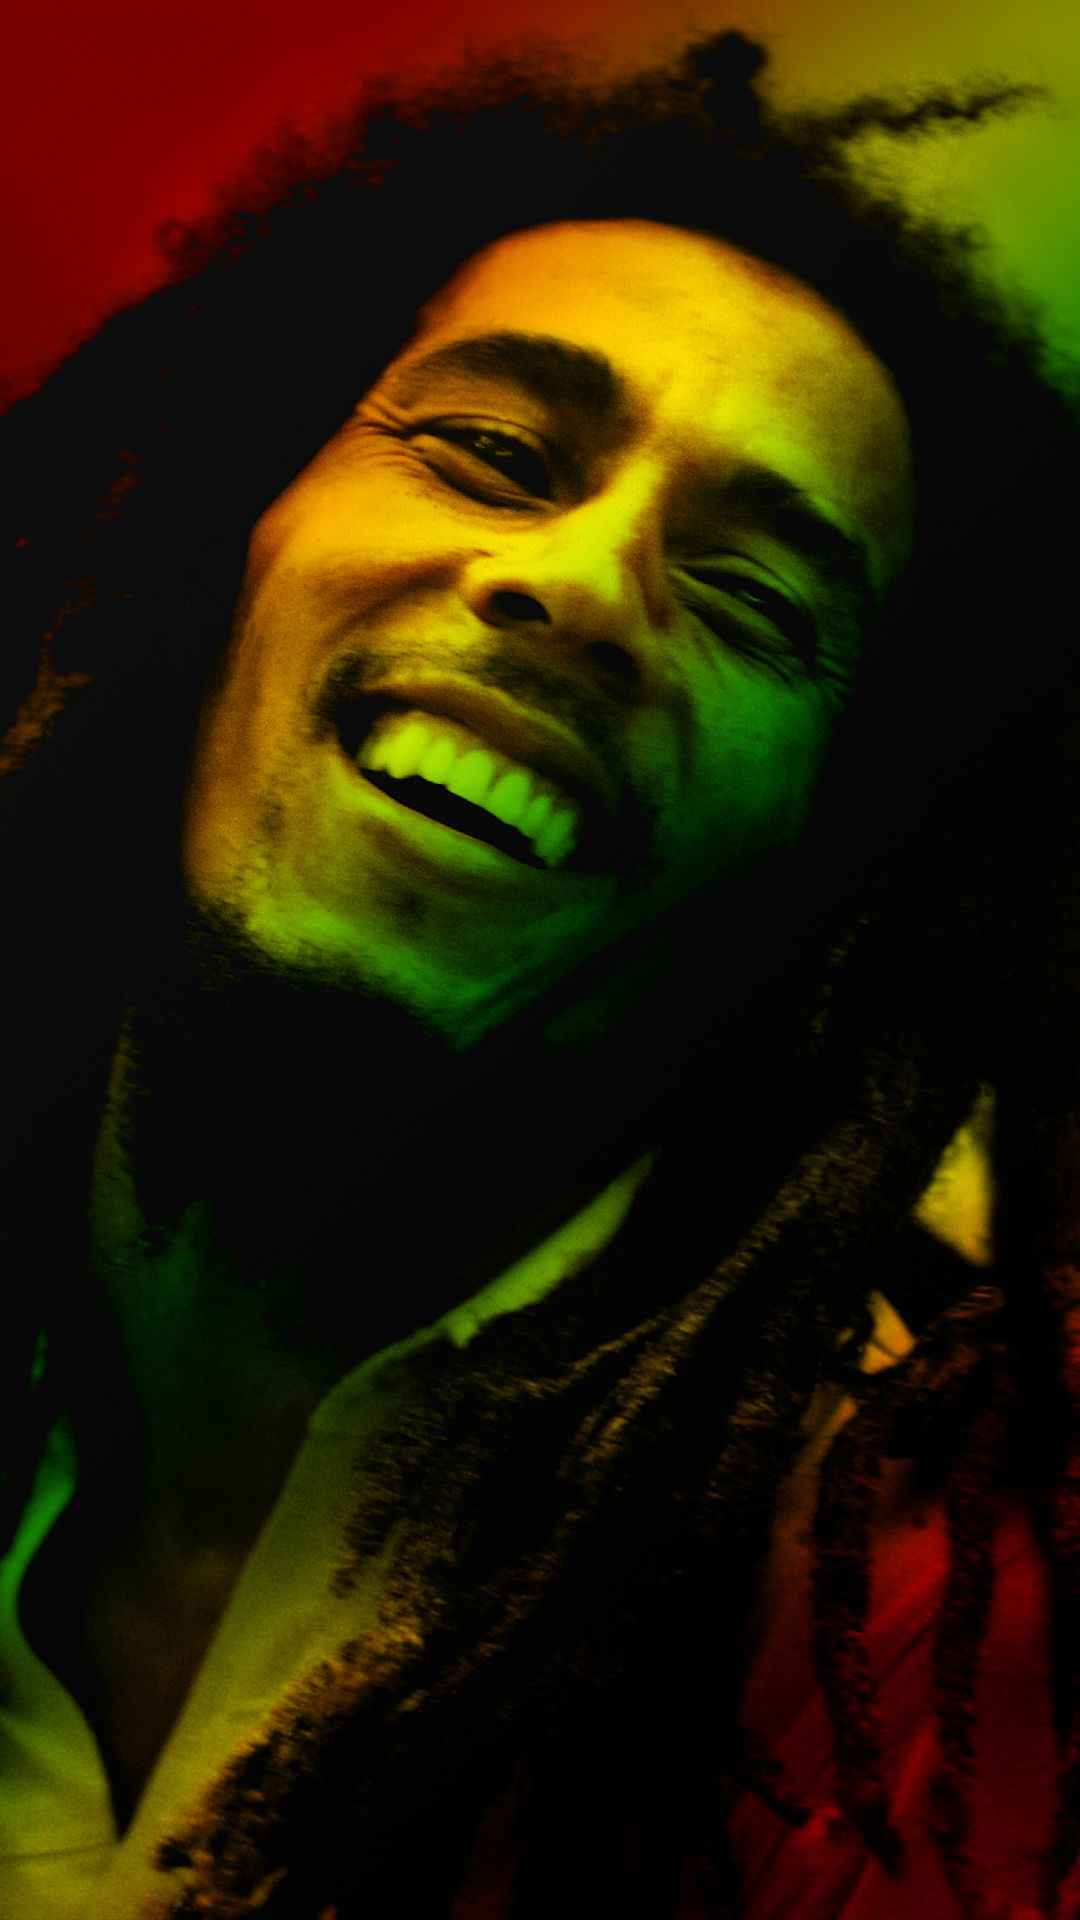 Bob Marley Wallpapers Free music Wallpaper Bob marley